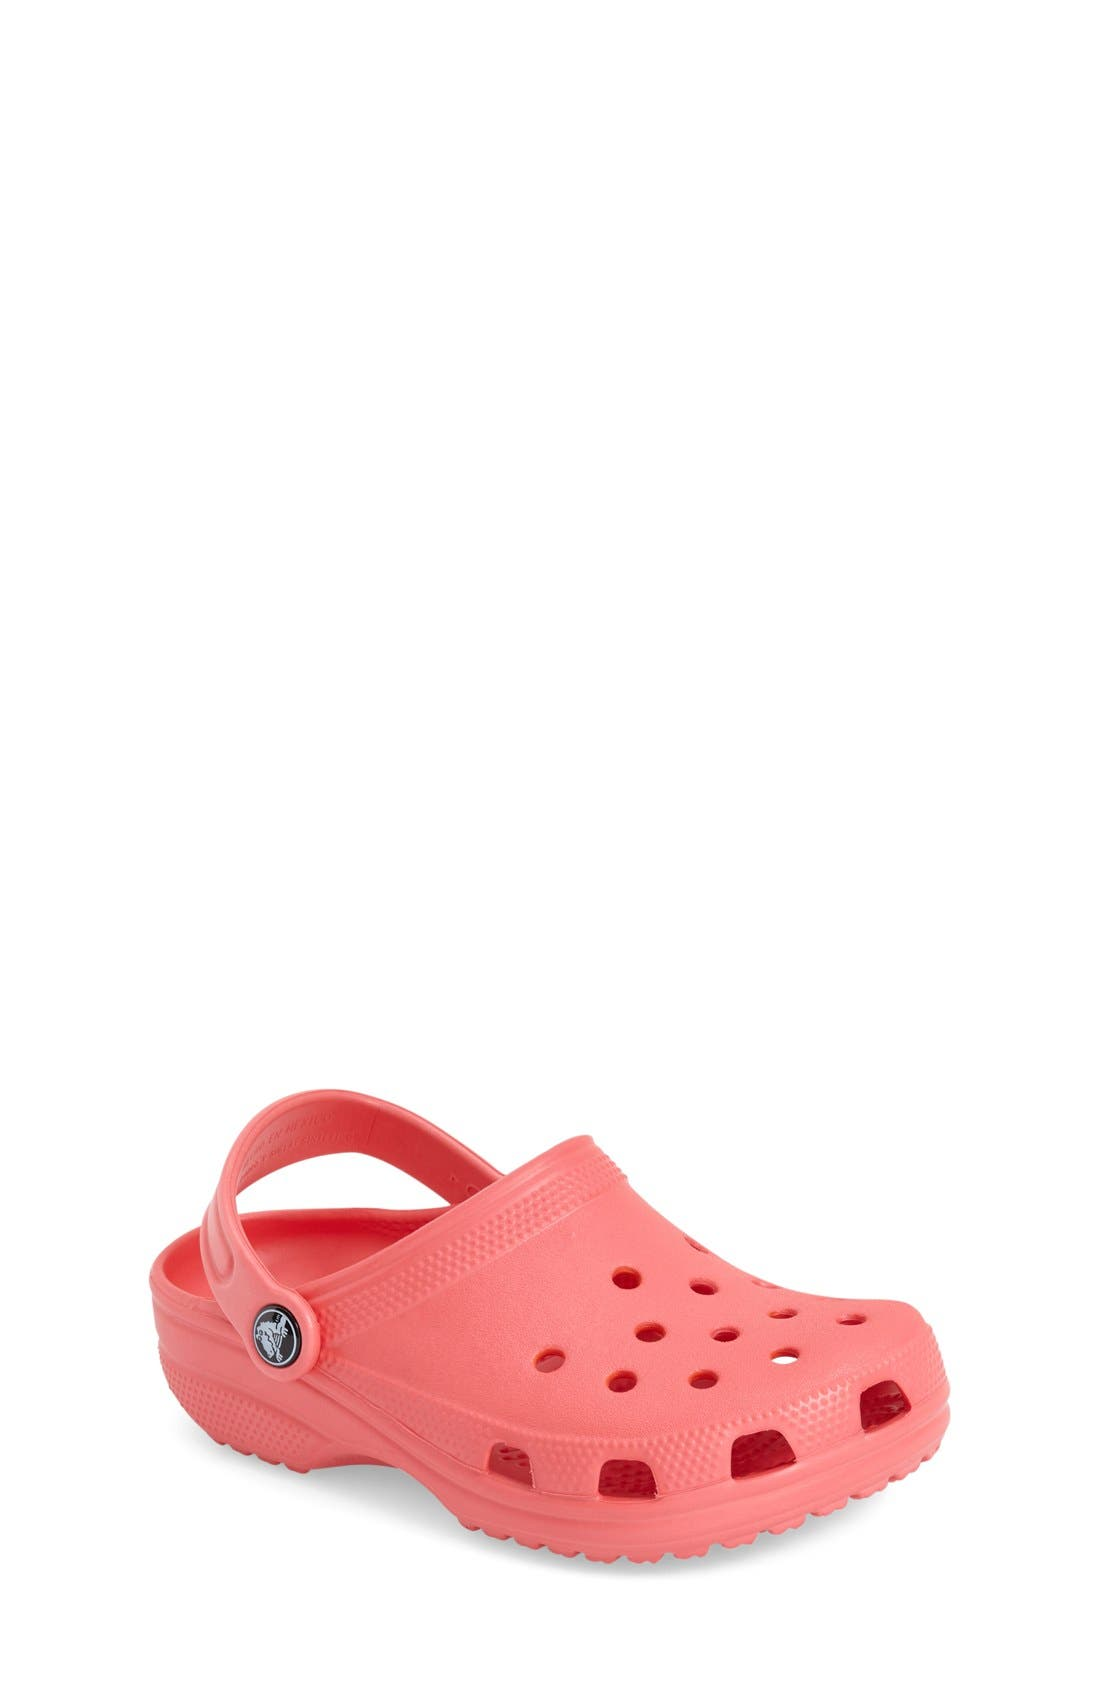 Alternate Image 1 Selected - CROCS™ 'Classic Clog' Sandal (Walker, Toddler & Little Kid)